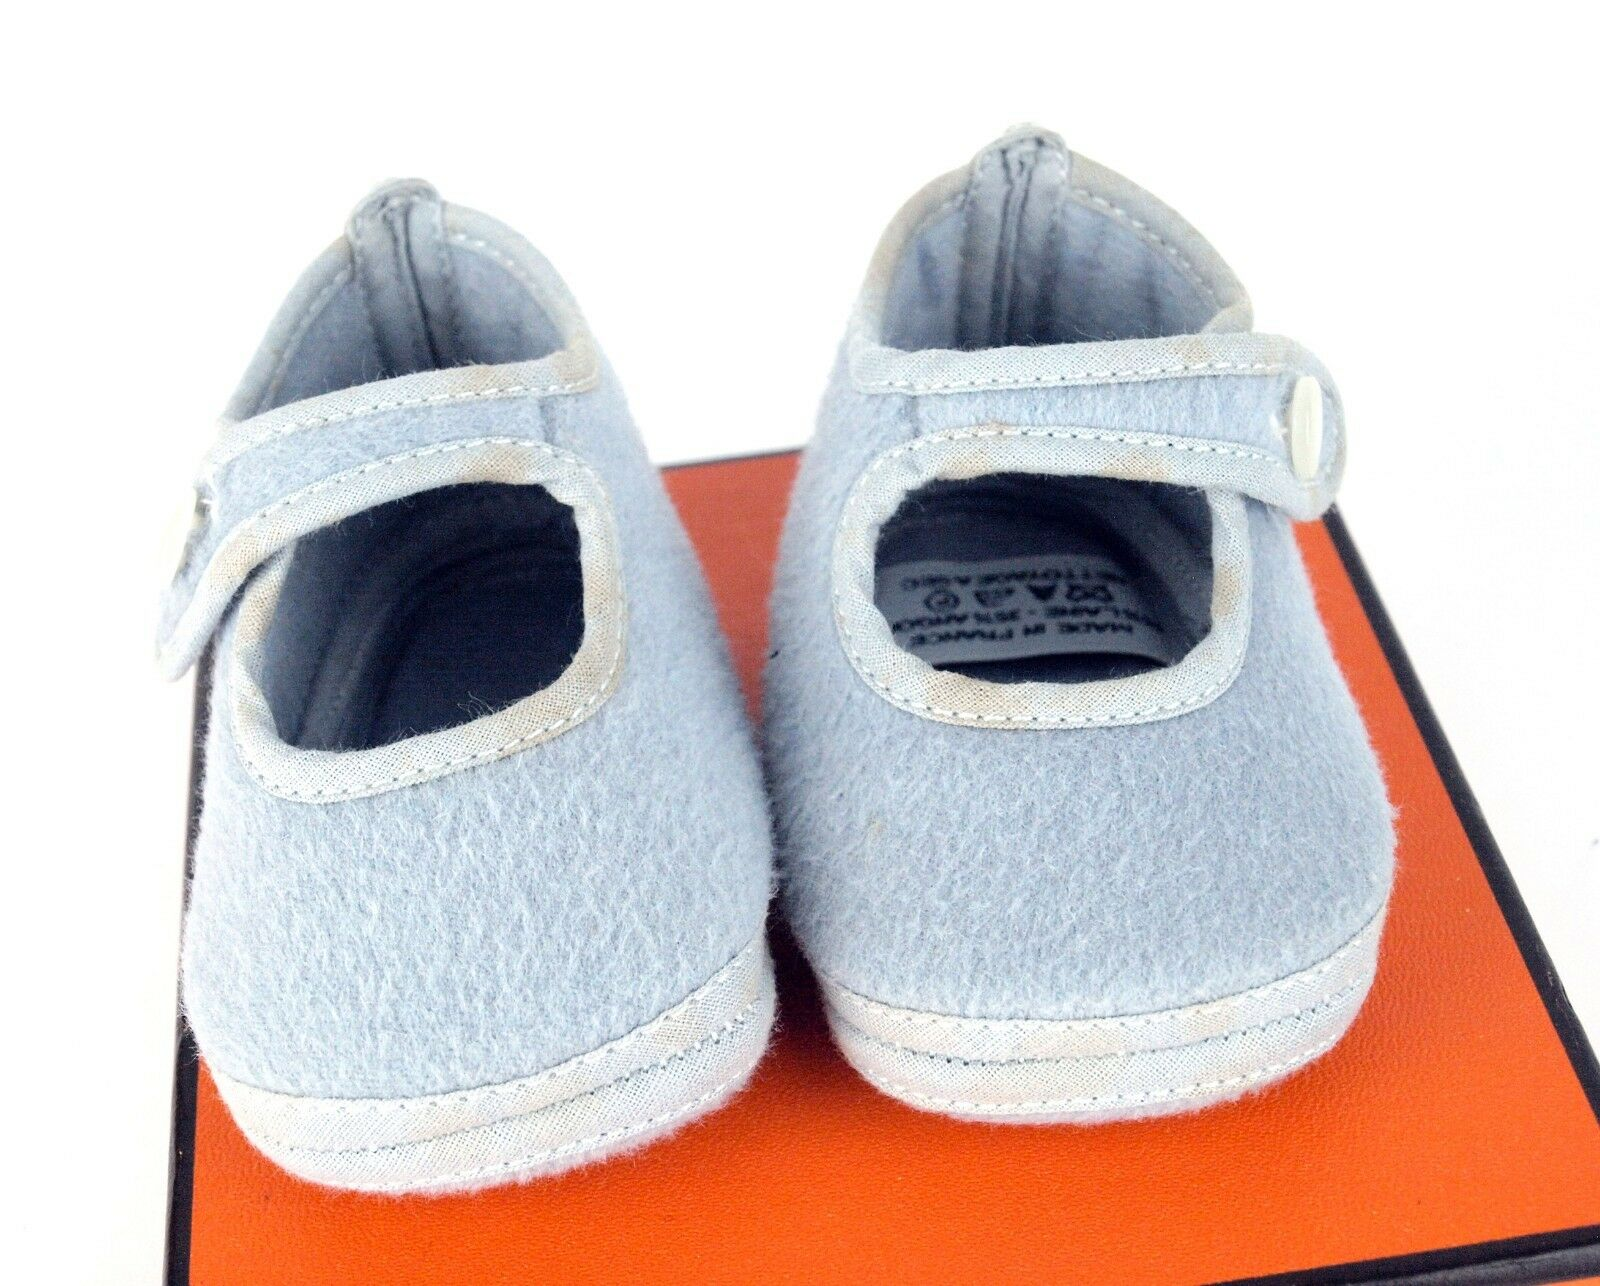 Authentic HERMES Newborn Baby Shoes / Booties Light Blue (Baby SZ & Toddler) SZ (Baby 2.5 f82942